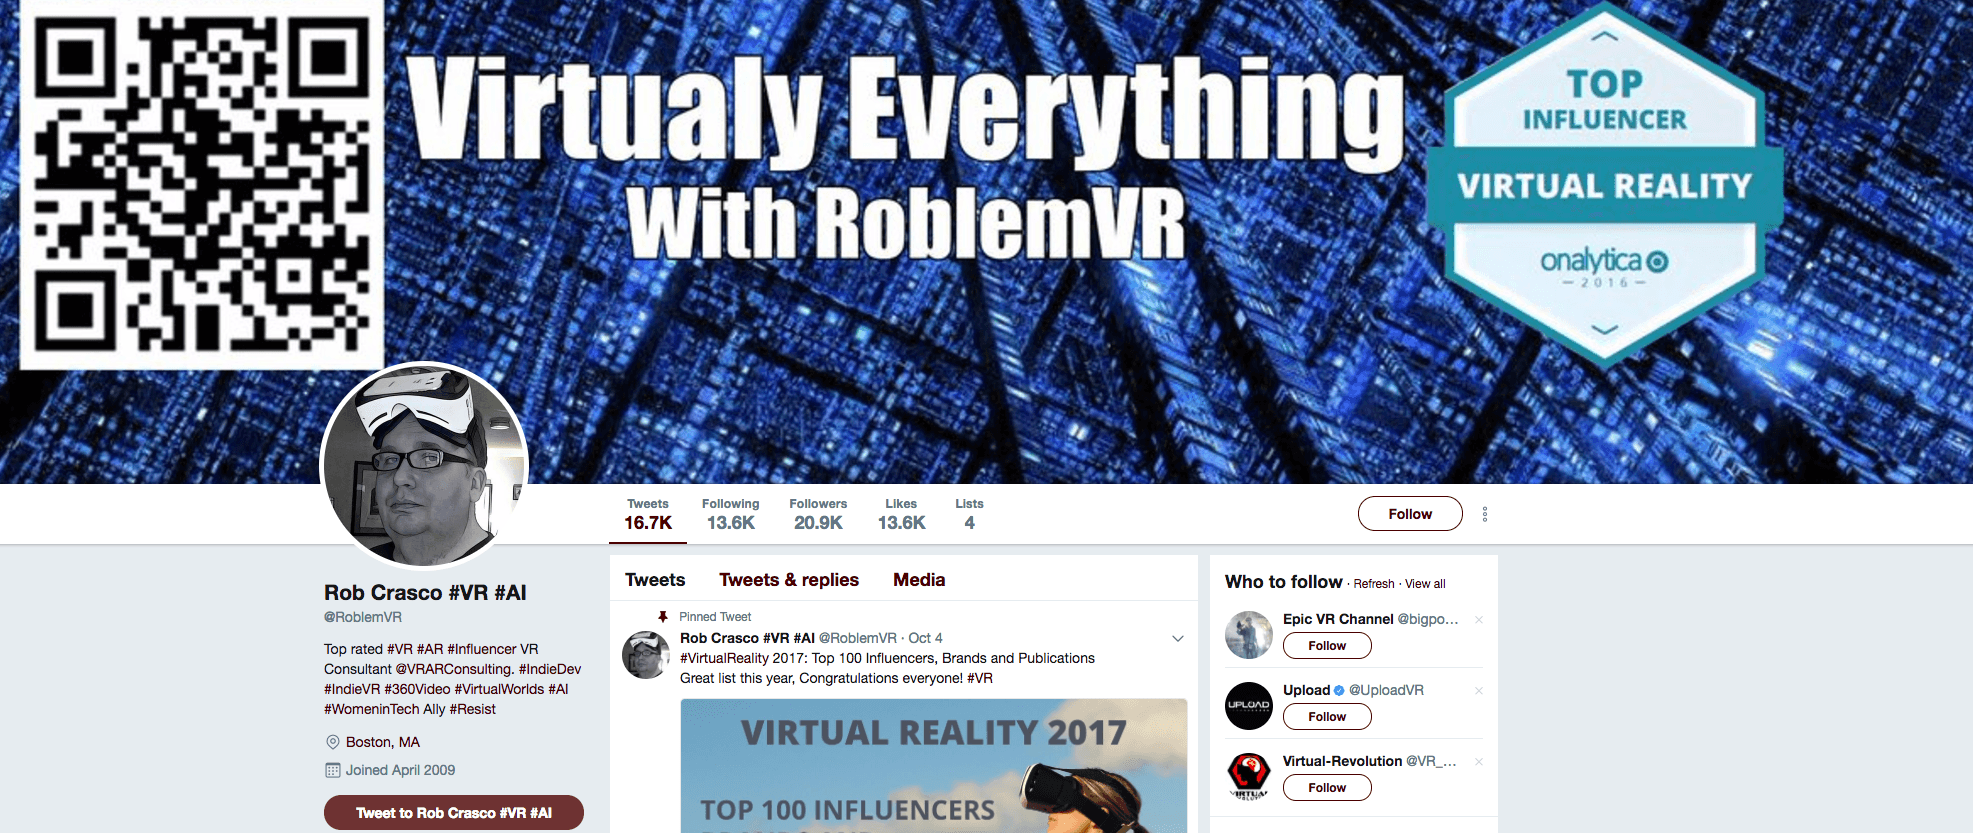 Rob Crasco #VR #AI Influencer